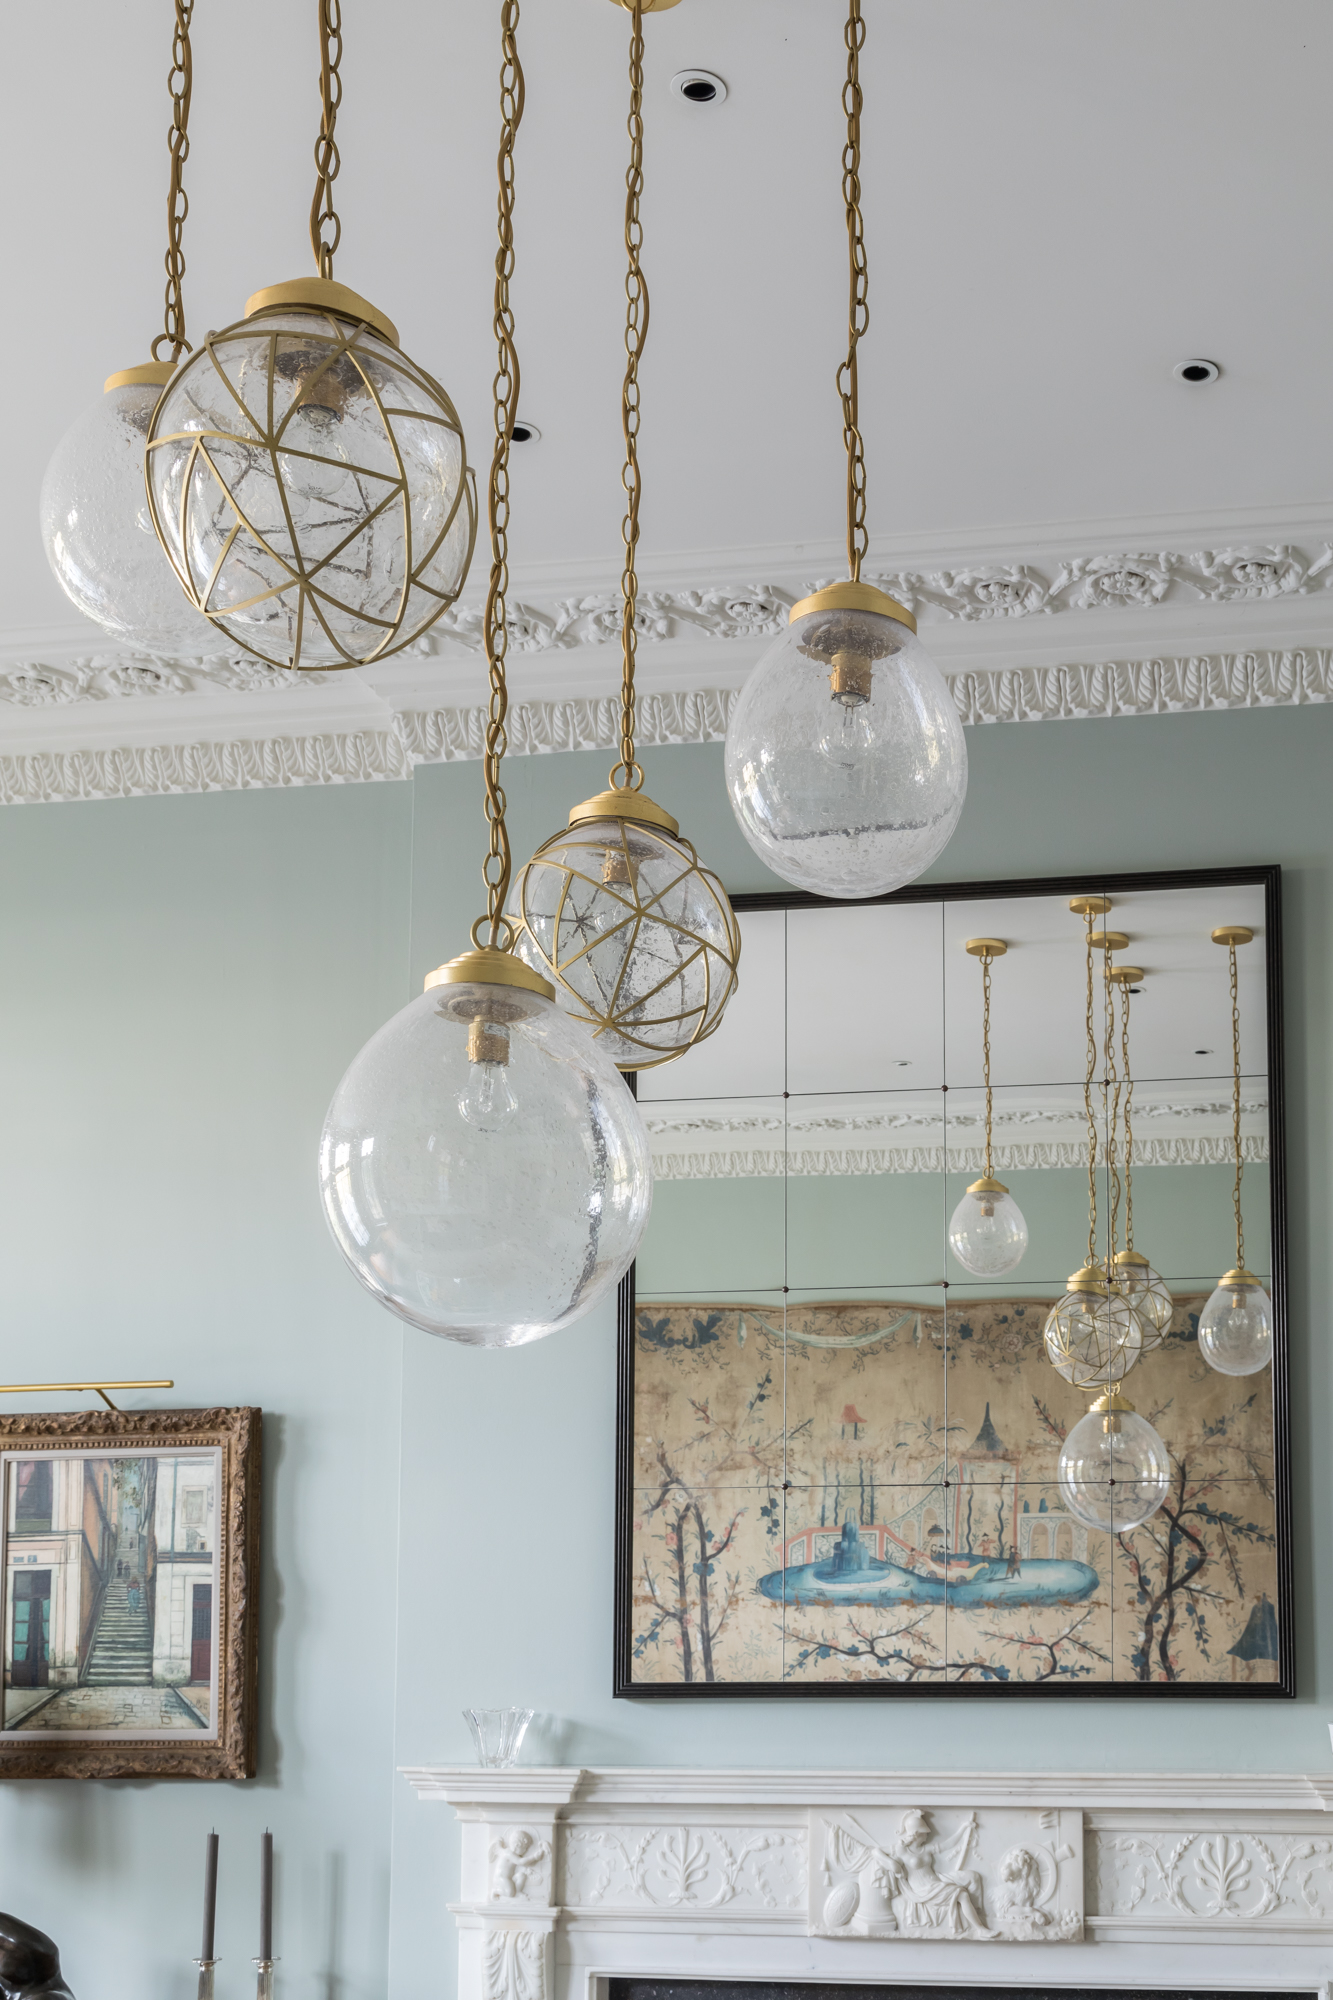 jonathan bond, interior photographer, contemporary ceiling pendant lighting, holland park, london